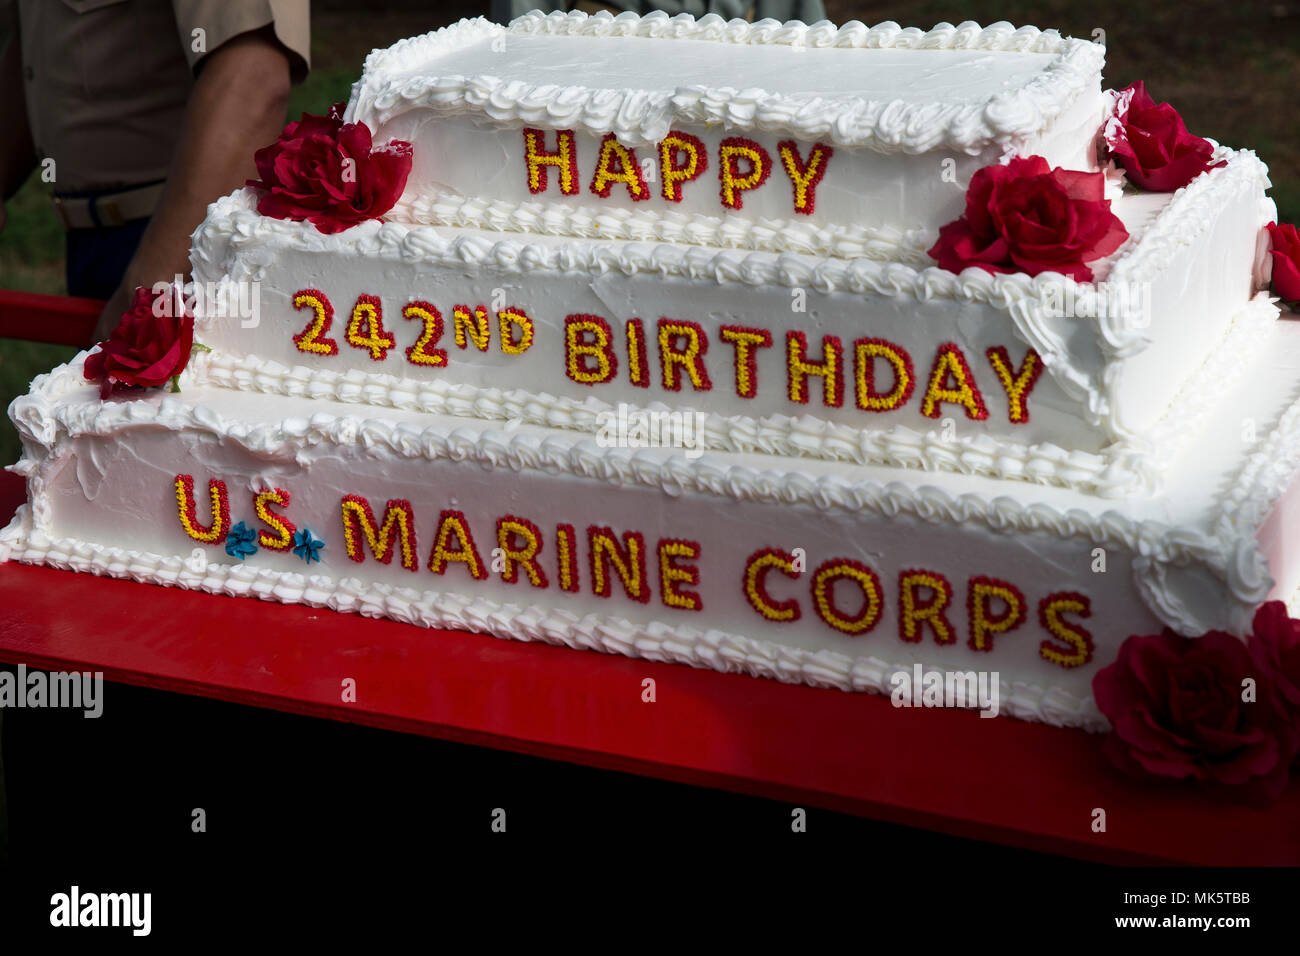 Marine Corps Birthday Cake High Resolution Stock Photography And Images Alamy